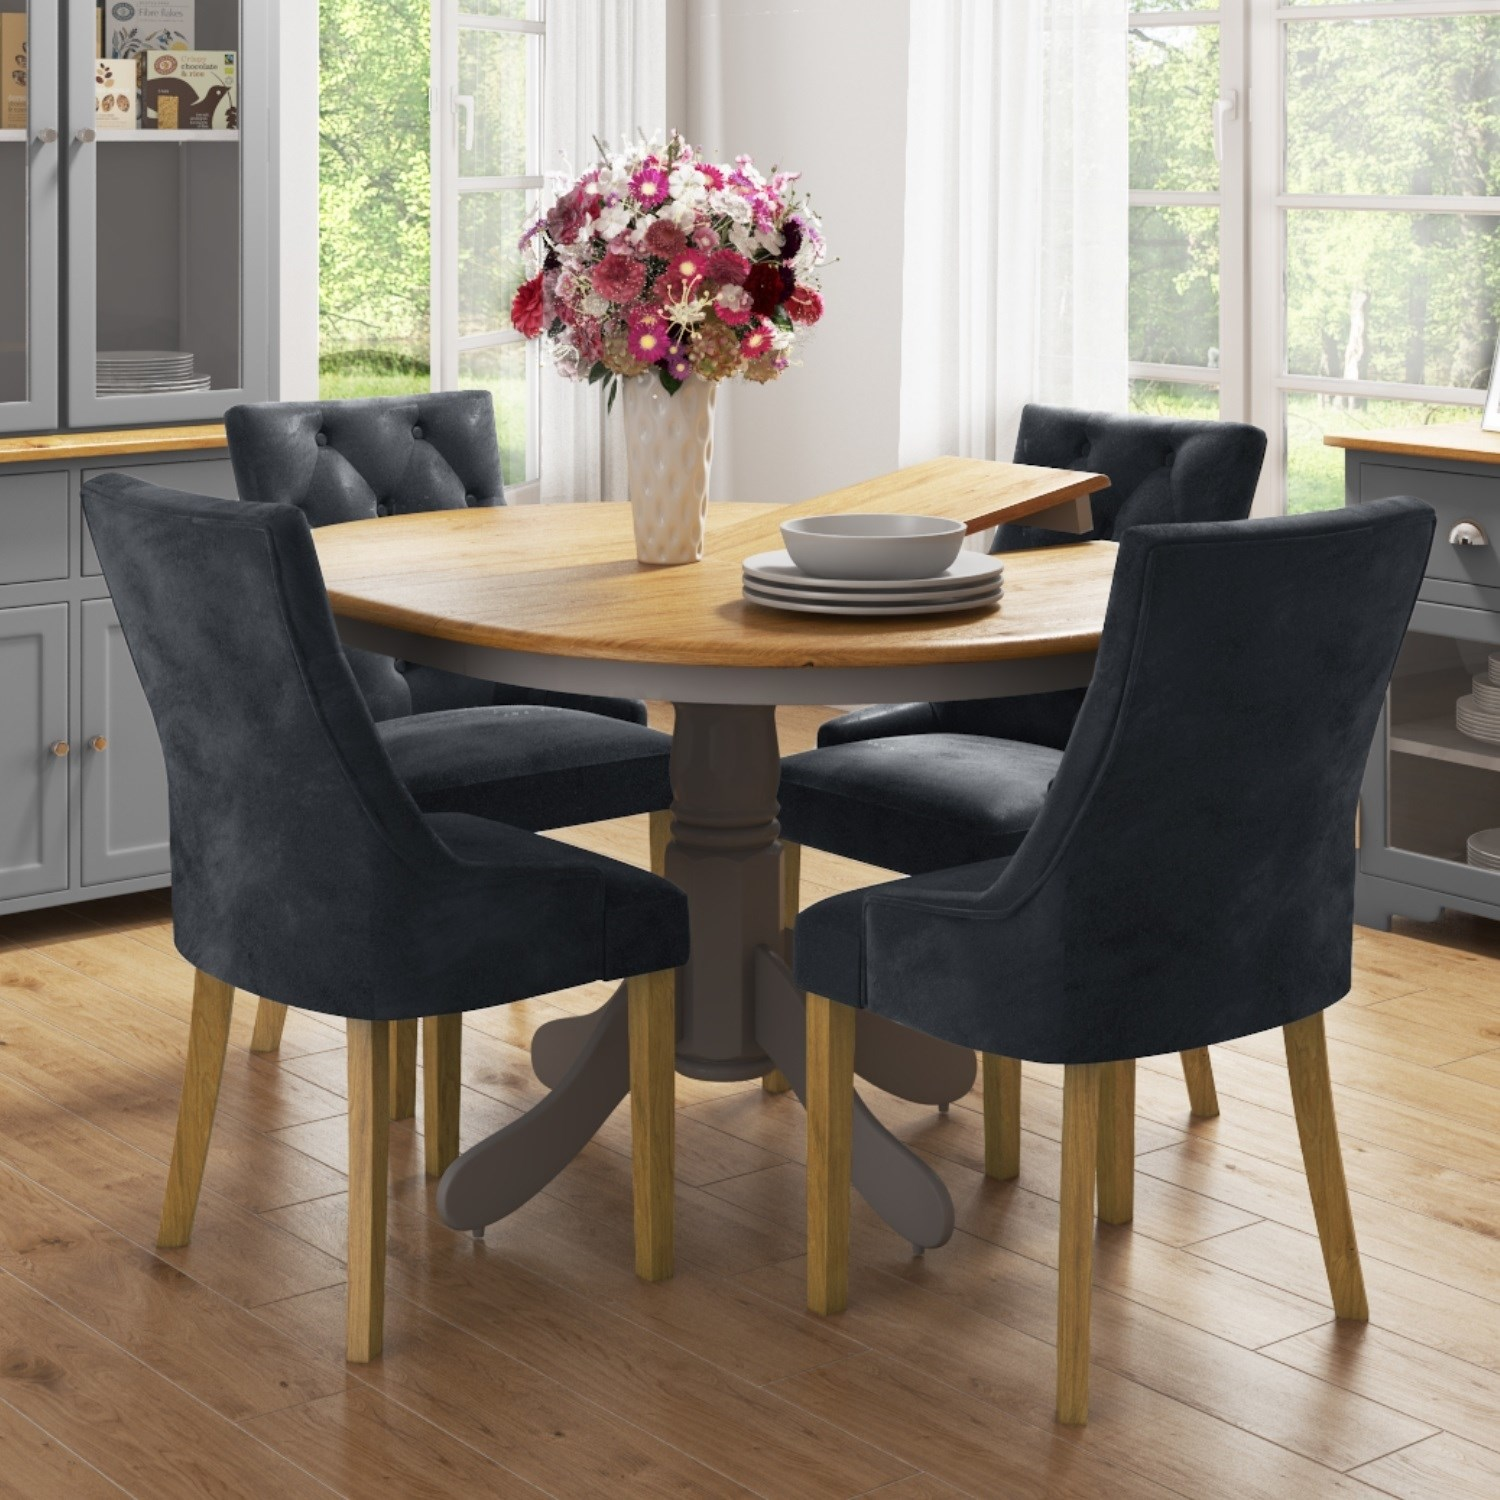 Round Extendable Dining Table With 4 Velvet Chairs In Grey Oak Finish Rhode Island Kaylee Furniture123